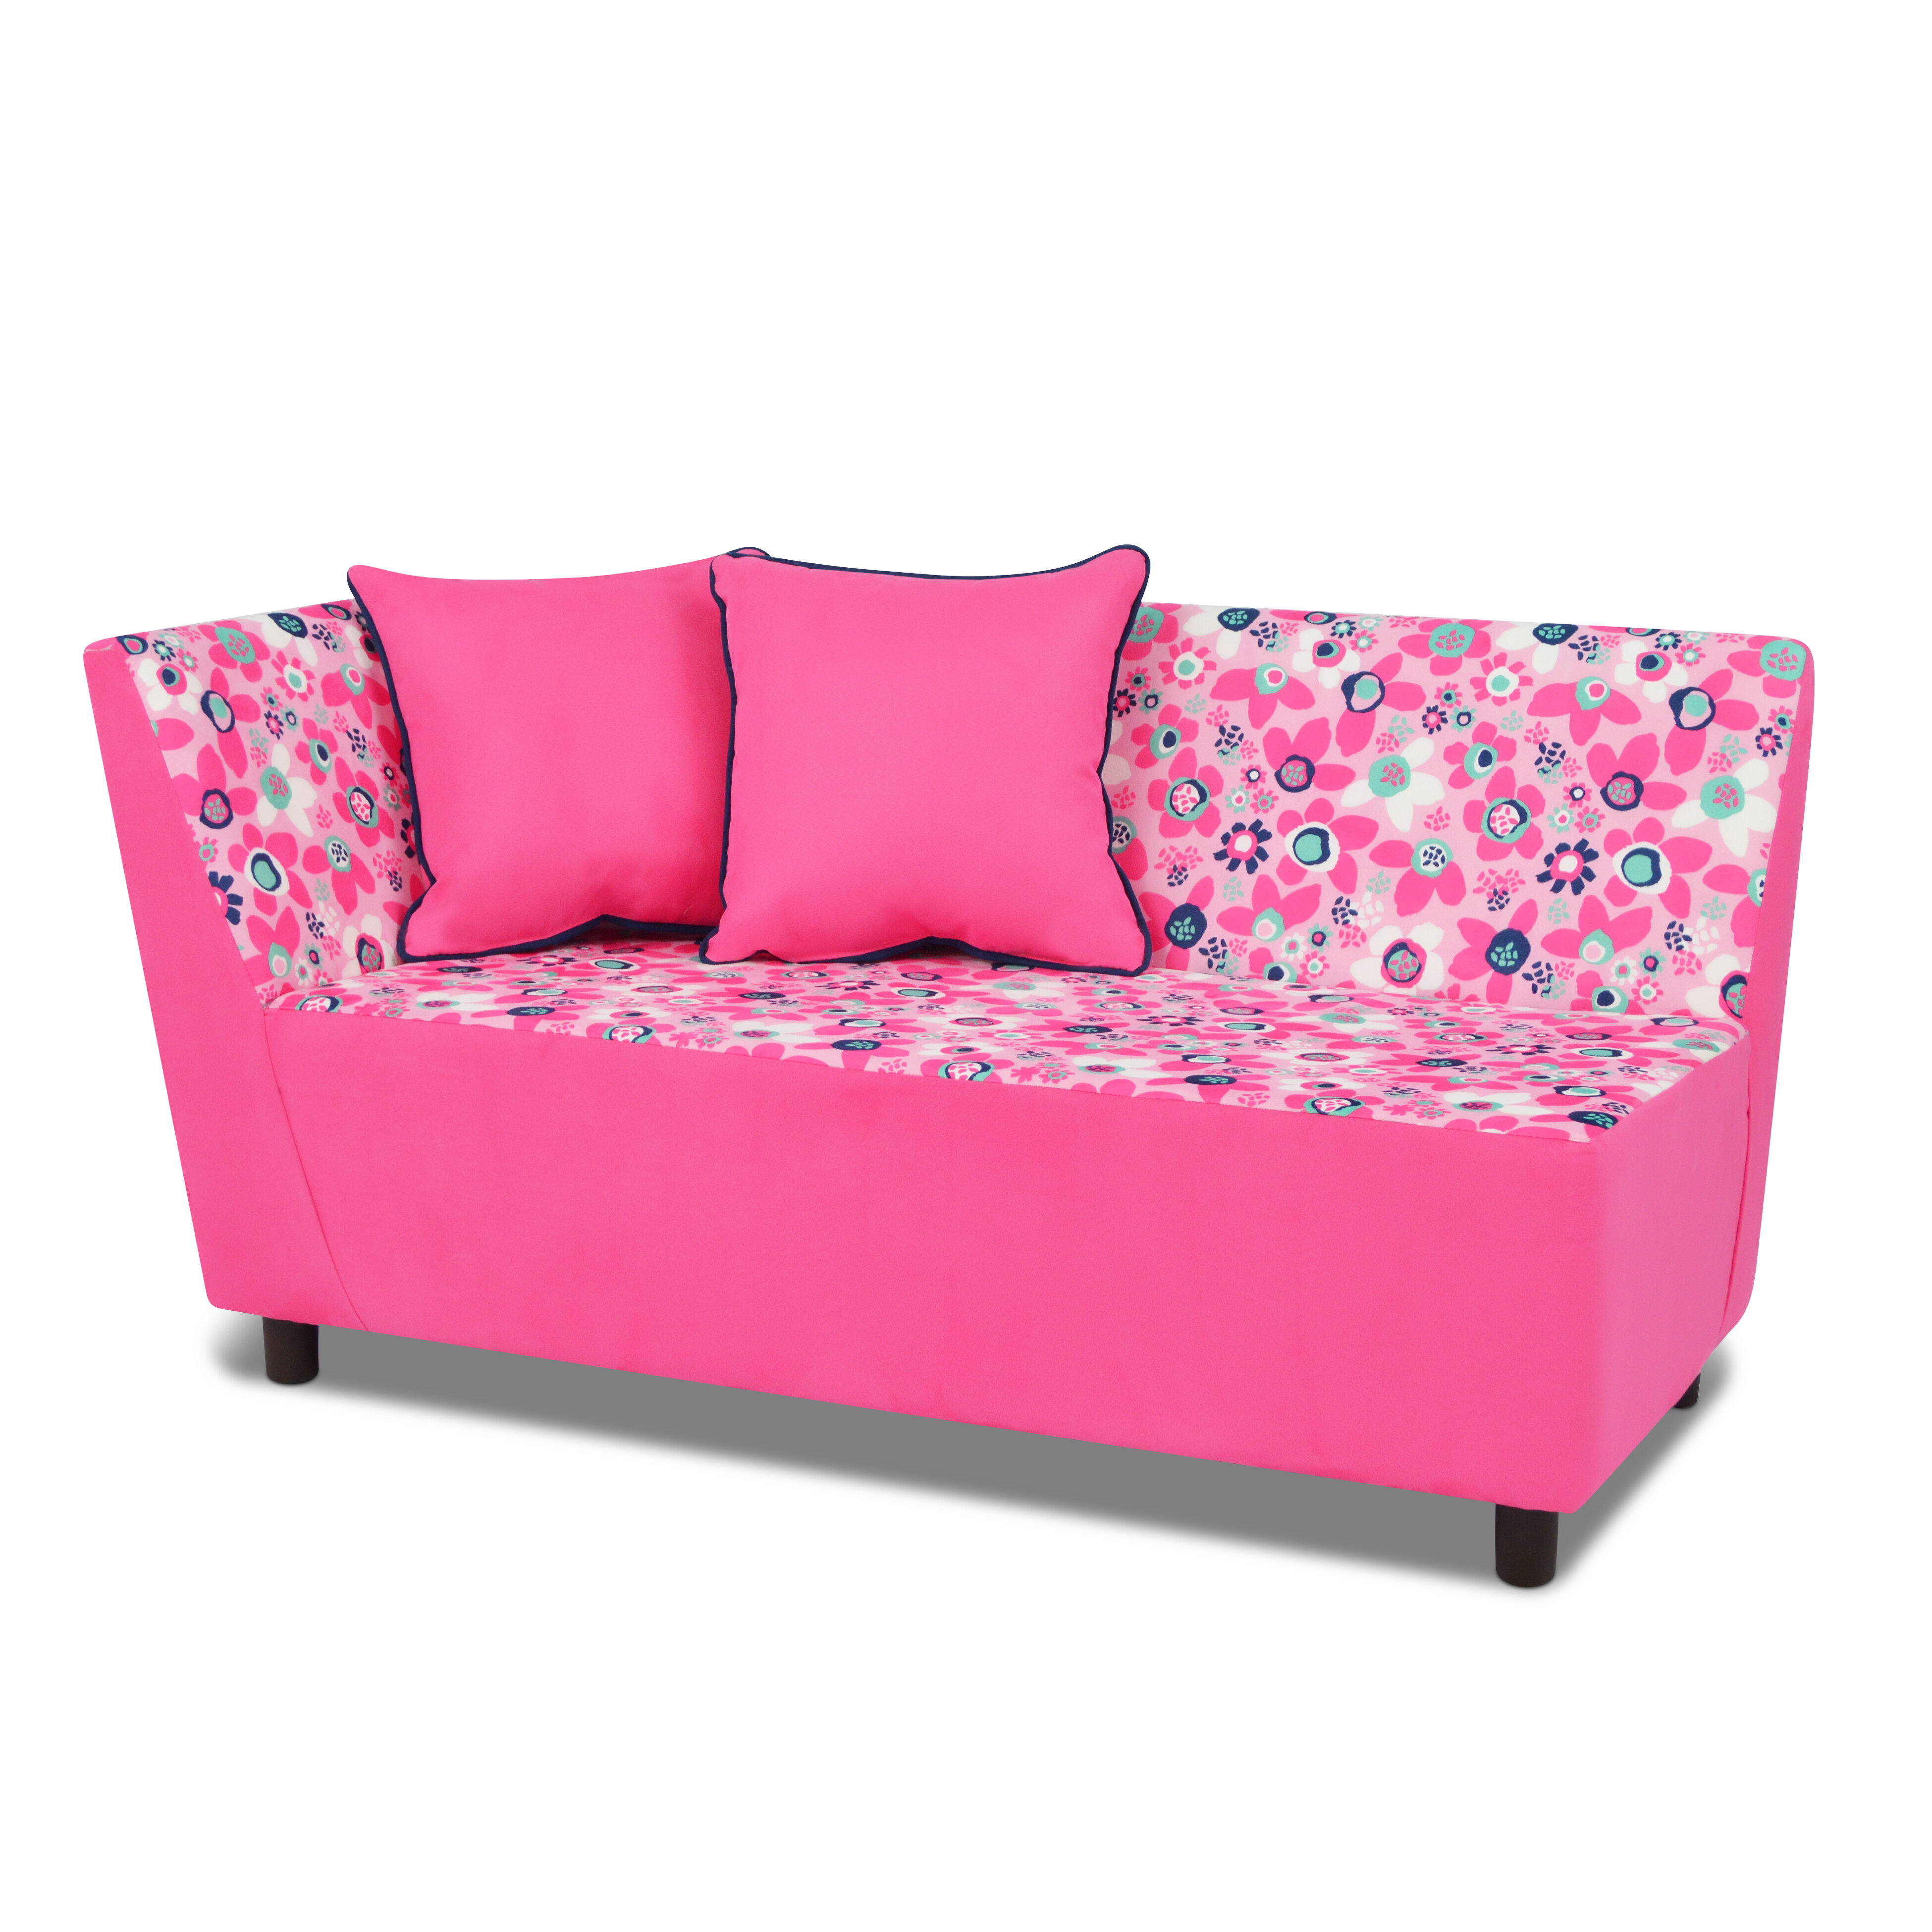 derhamn s ikea hardwearing samsta chaise en pink is sofas products gb spr light armchairs longues which and soft longue microfibre smooth